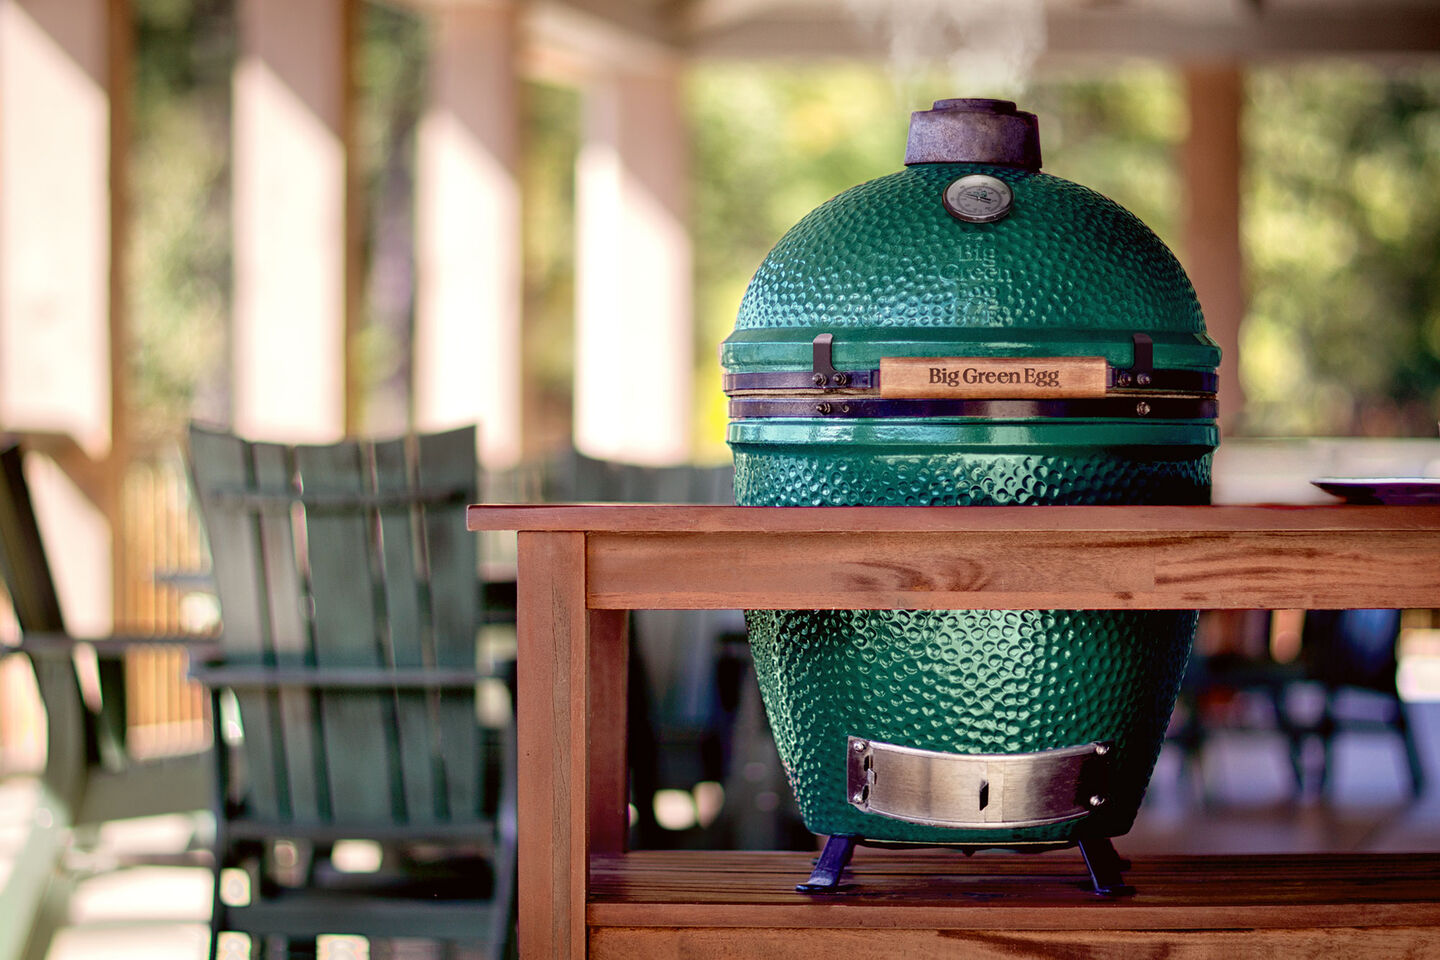 Big Green Egg Ceramic Grill on Patio